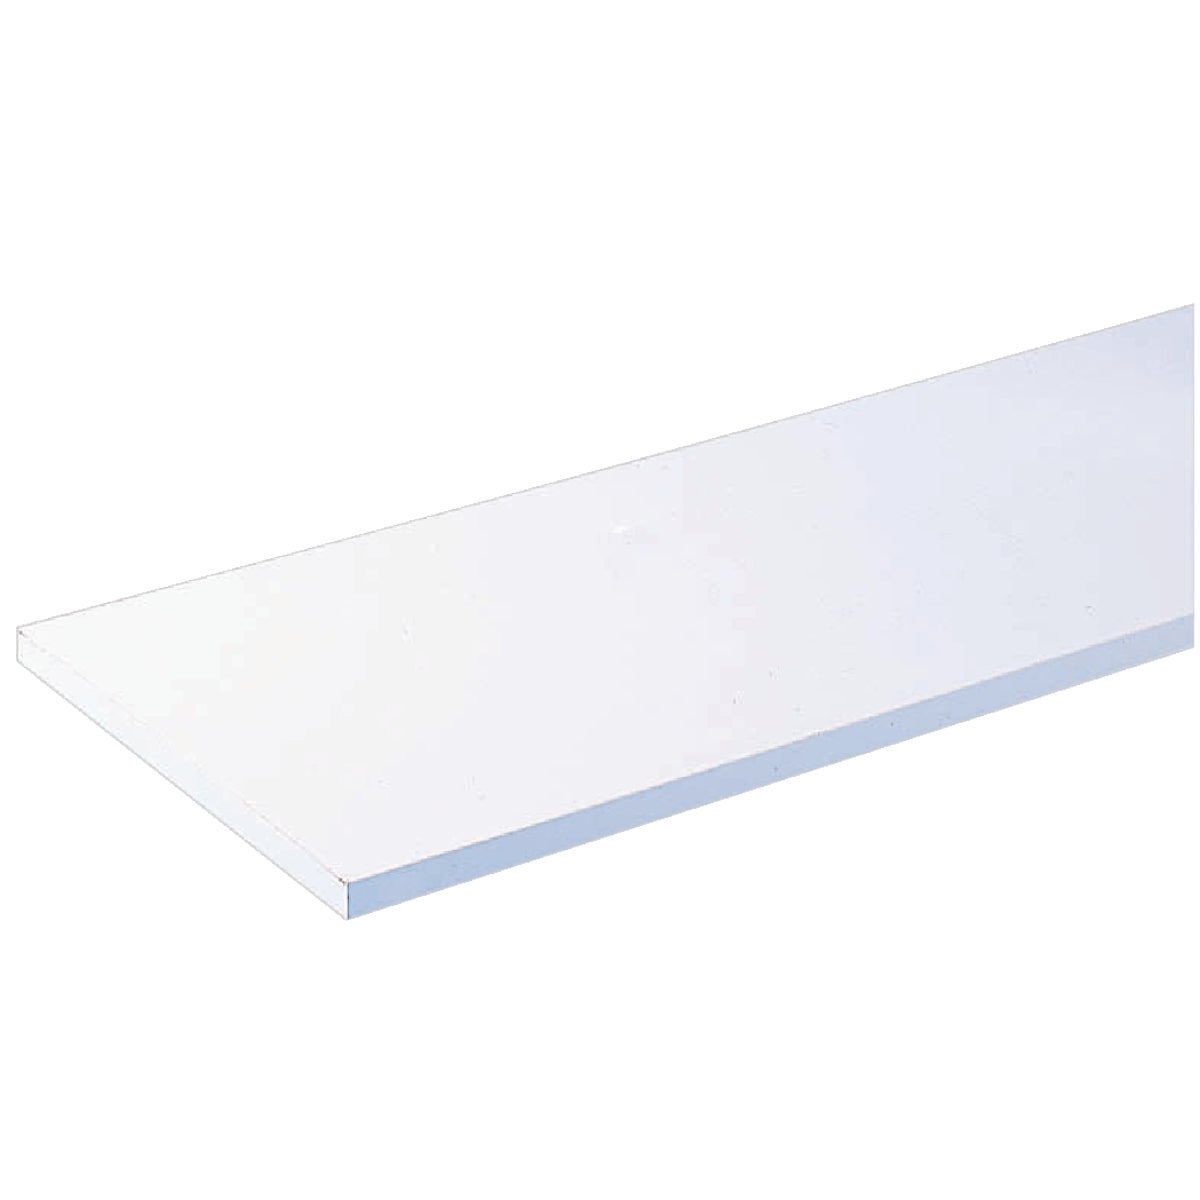 10X36 WHITE SHELF - 1980WH by Knape & Vogt Mfg Co